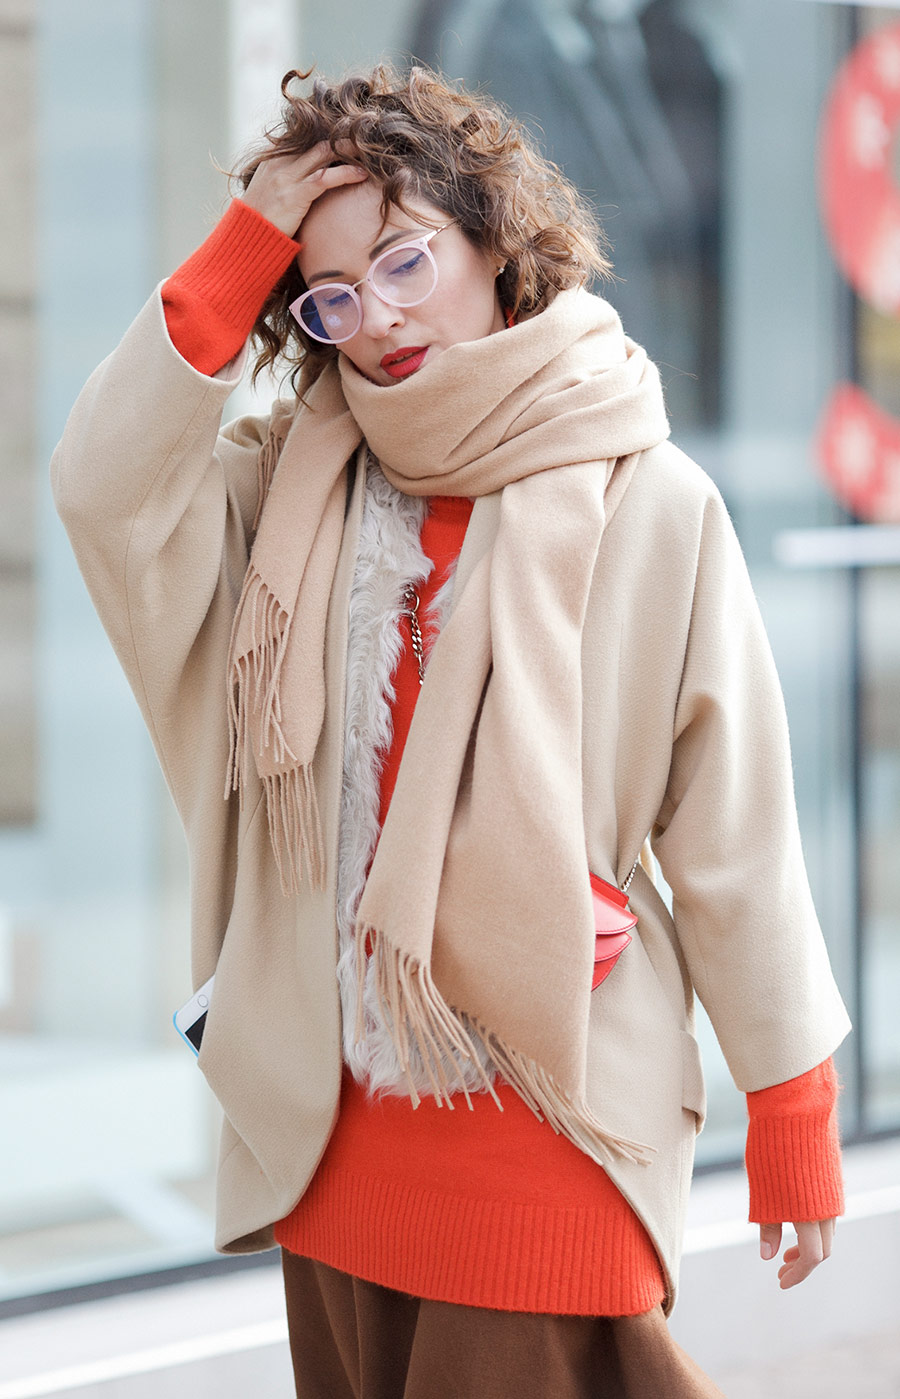 camel coat, street style photo, street styles for winter, winter outfits, chic style winter outfits, Ellena Galant,